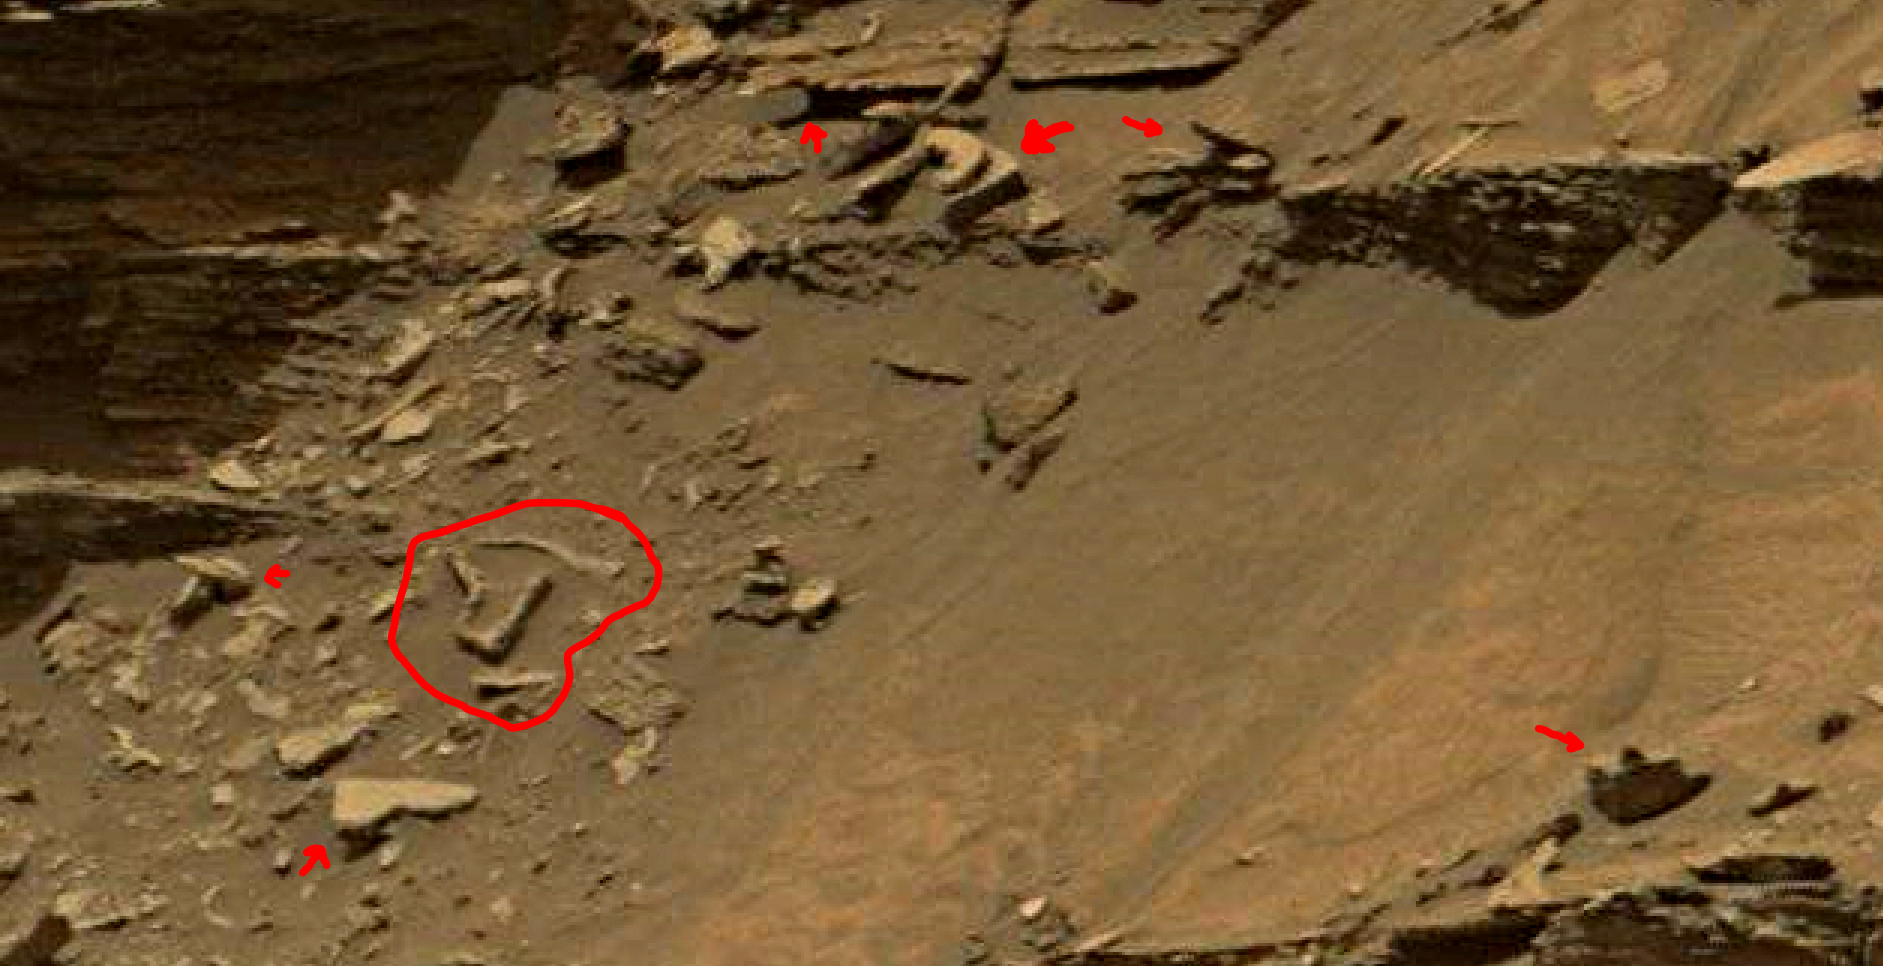 mars sol 1447 anomaly artifacts 8a - was life on mars